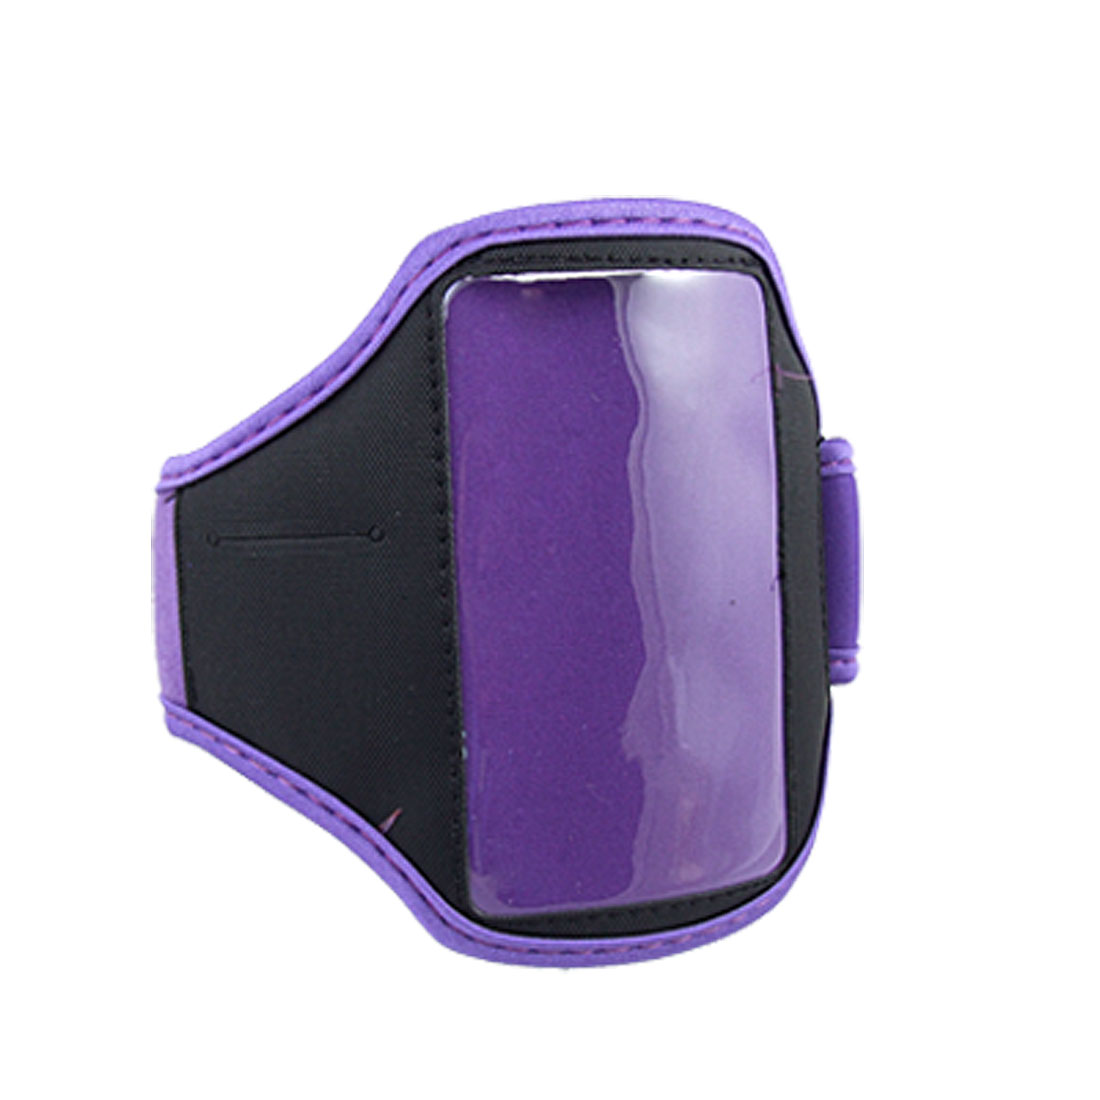 Neoprene Sports Purple Black Armband for iPod Touch 4G